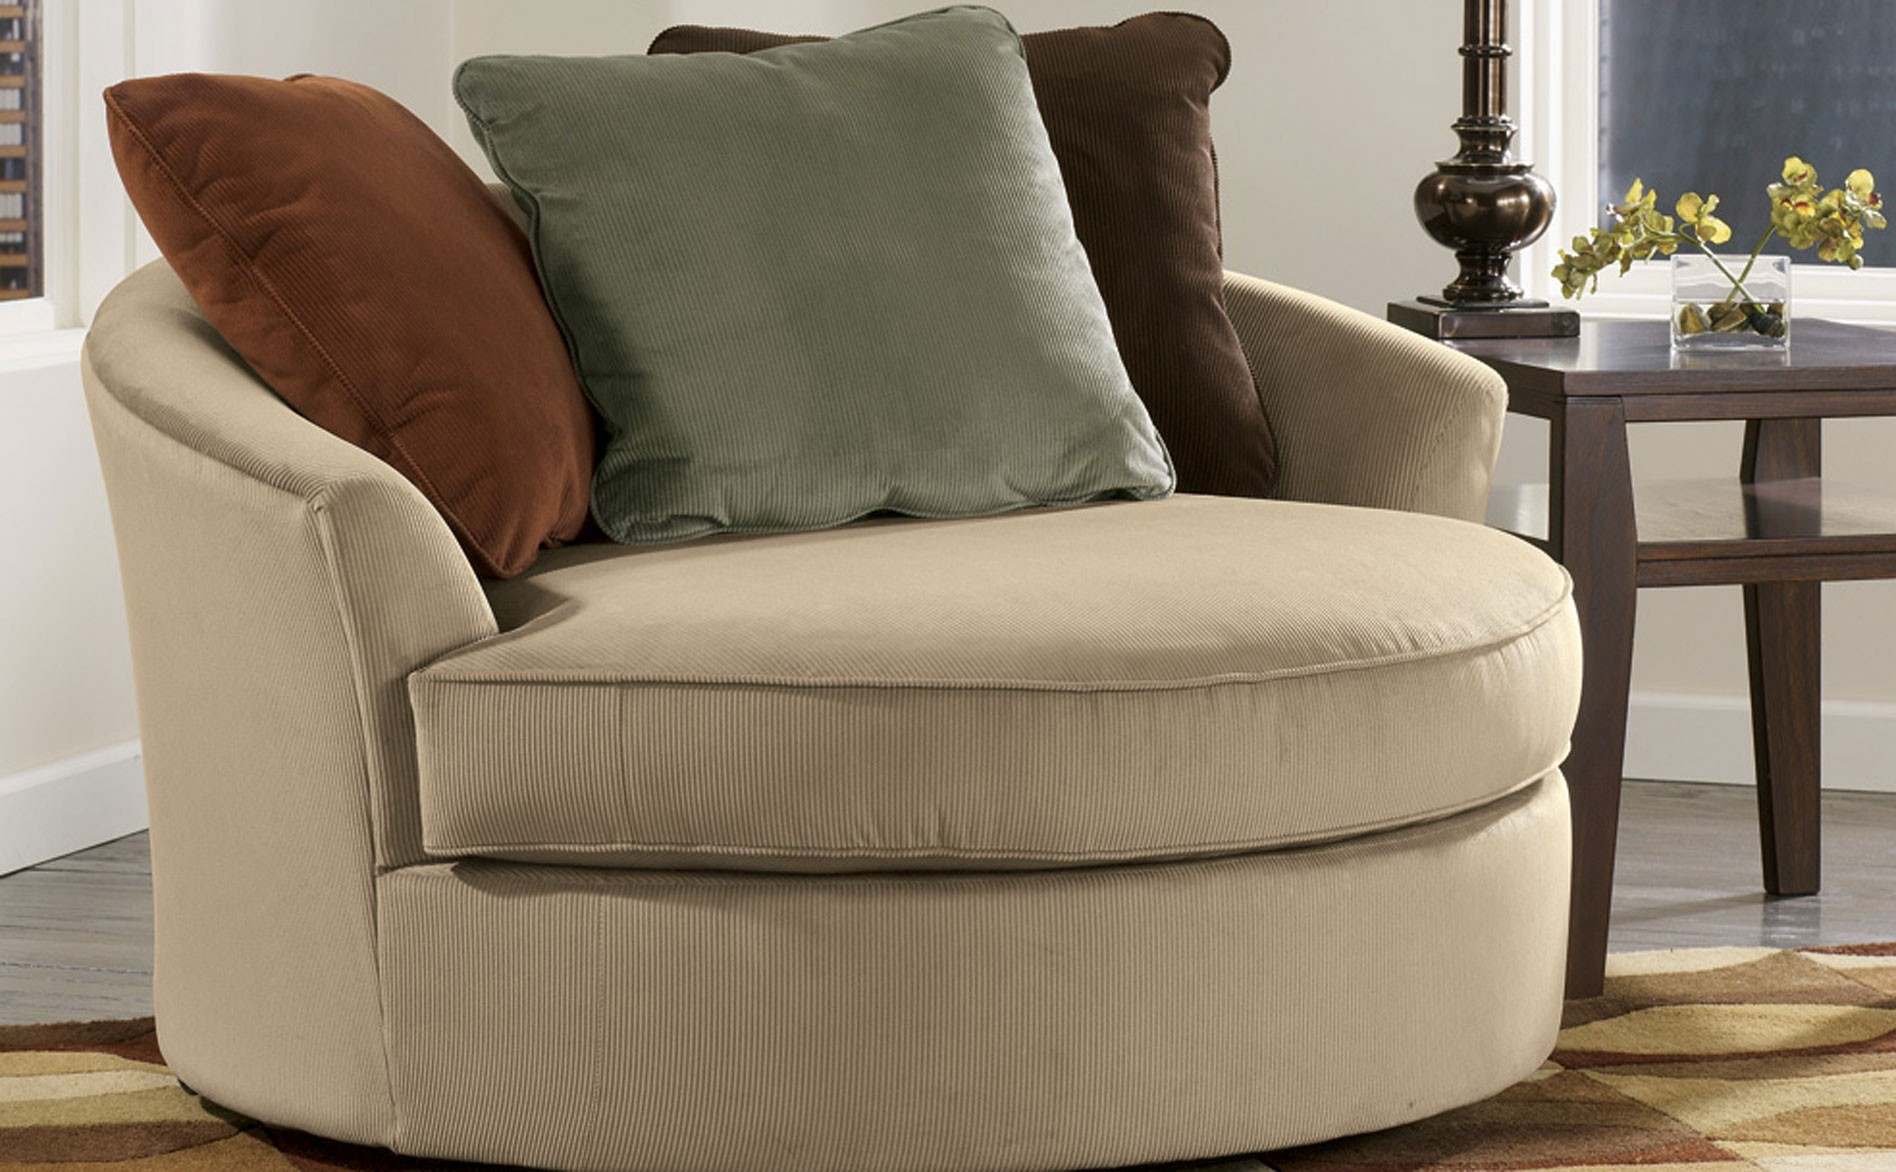 Oversized Accent Chair  Gives Luxurious Touch  HomesFeed